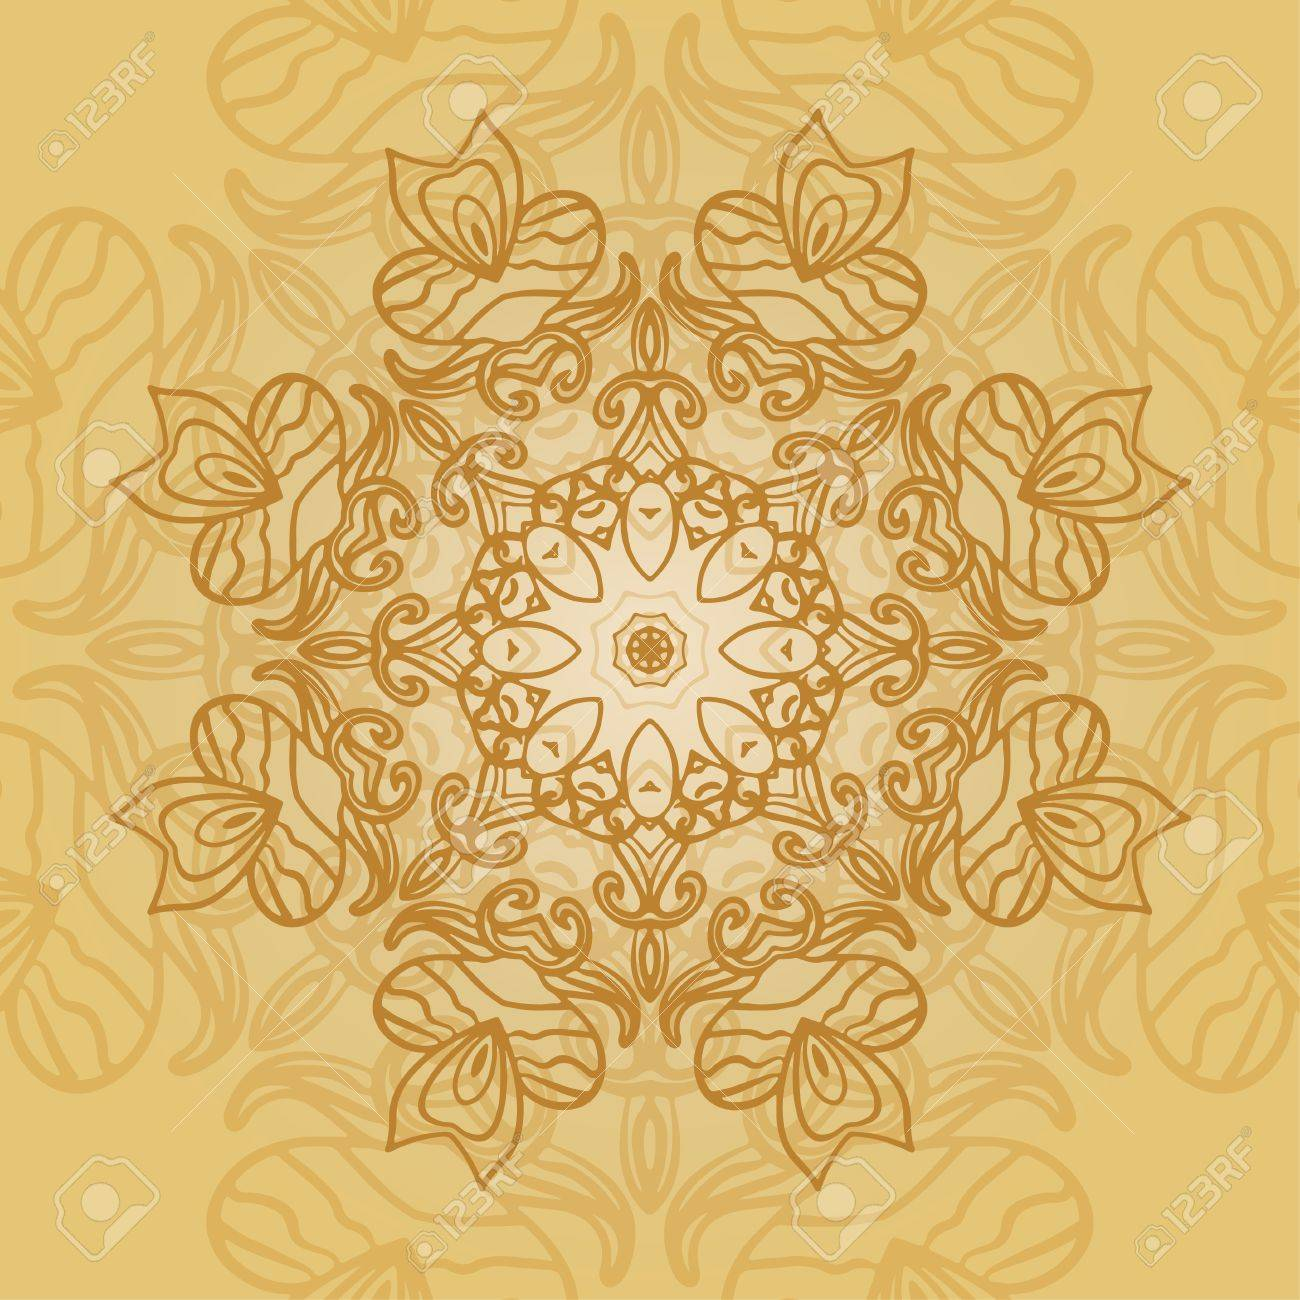 Mandala Card In Yellow Colors For Backgrounds Invitations Birthday